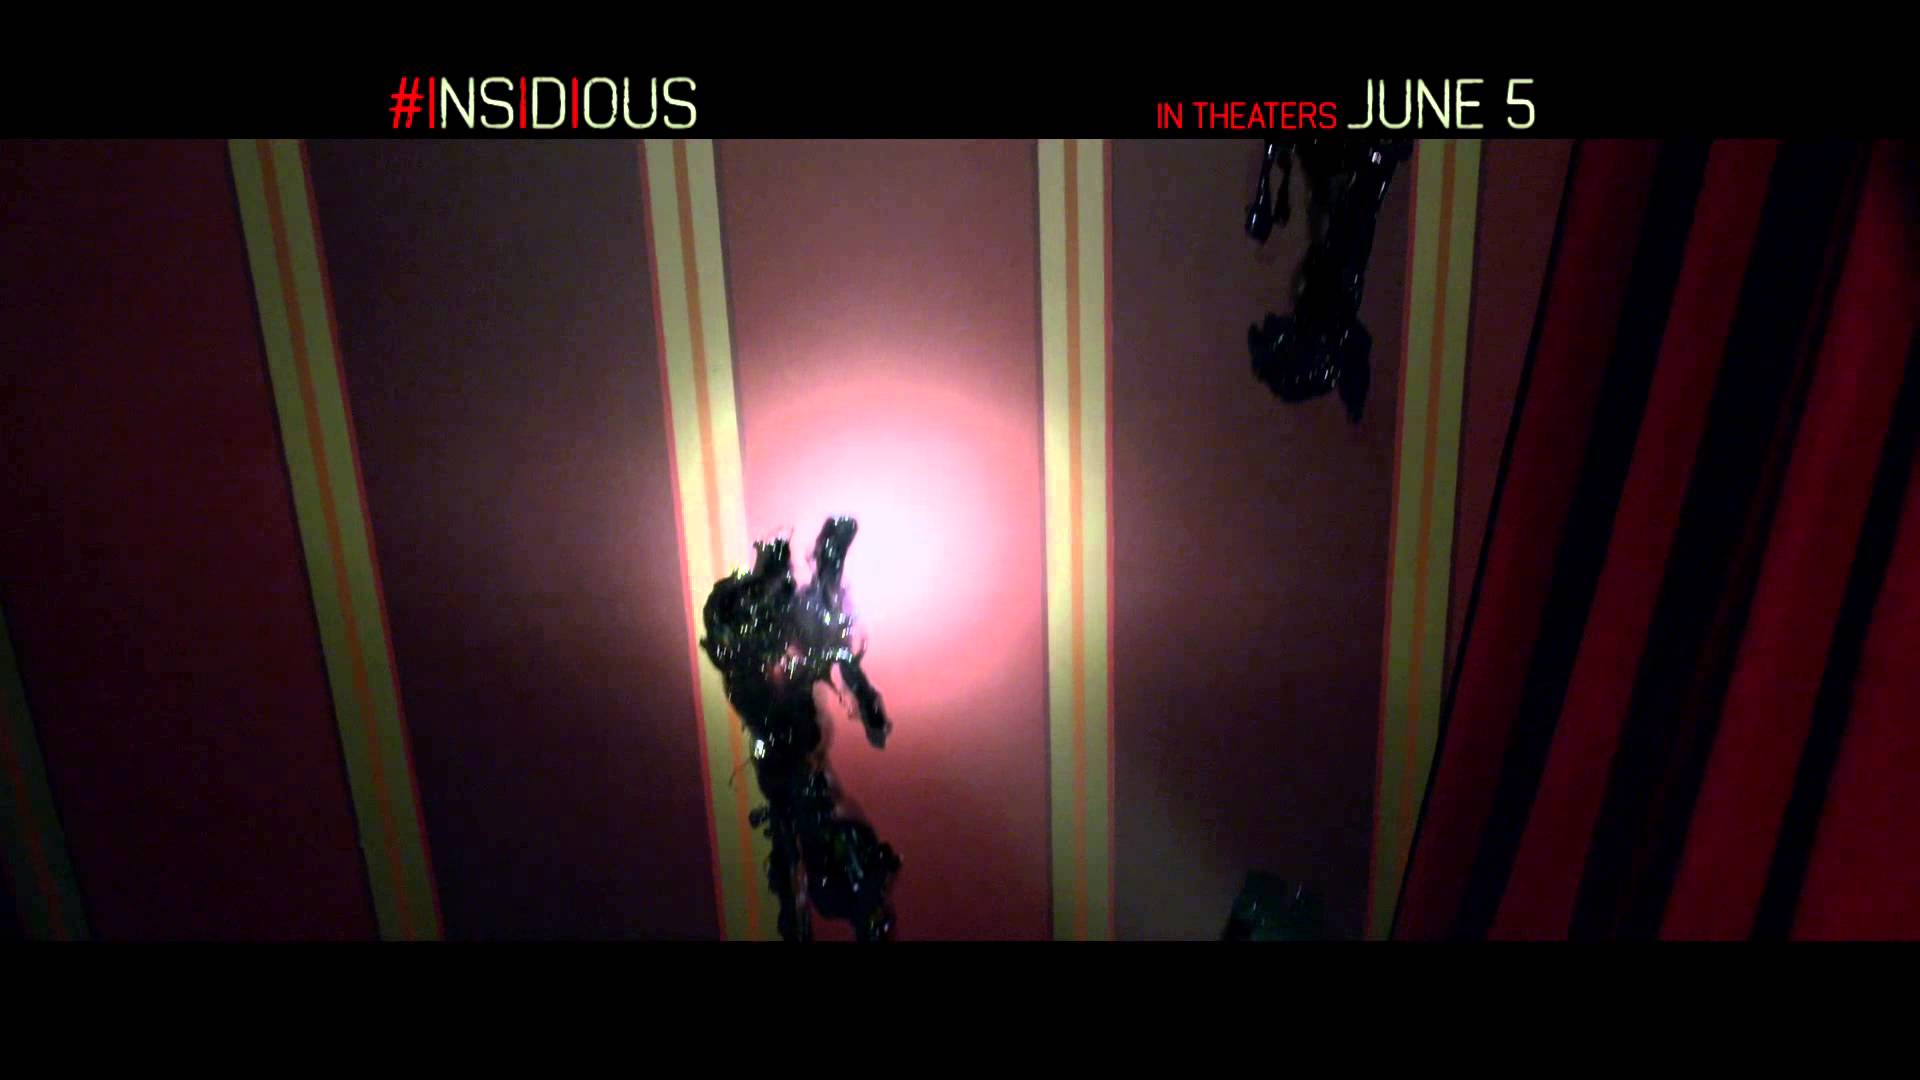 INSIDIOUS: CHAPTER 3 – One Name – In Theaters June 5